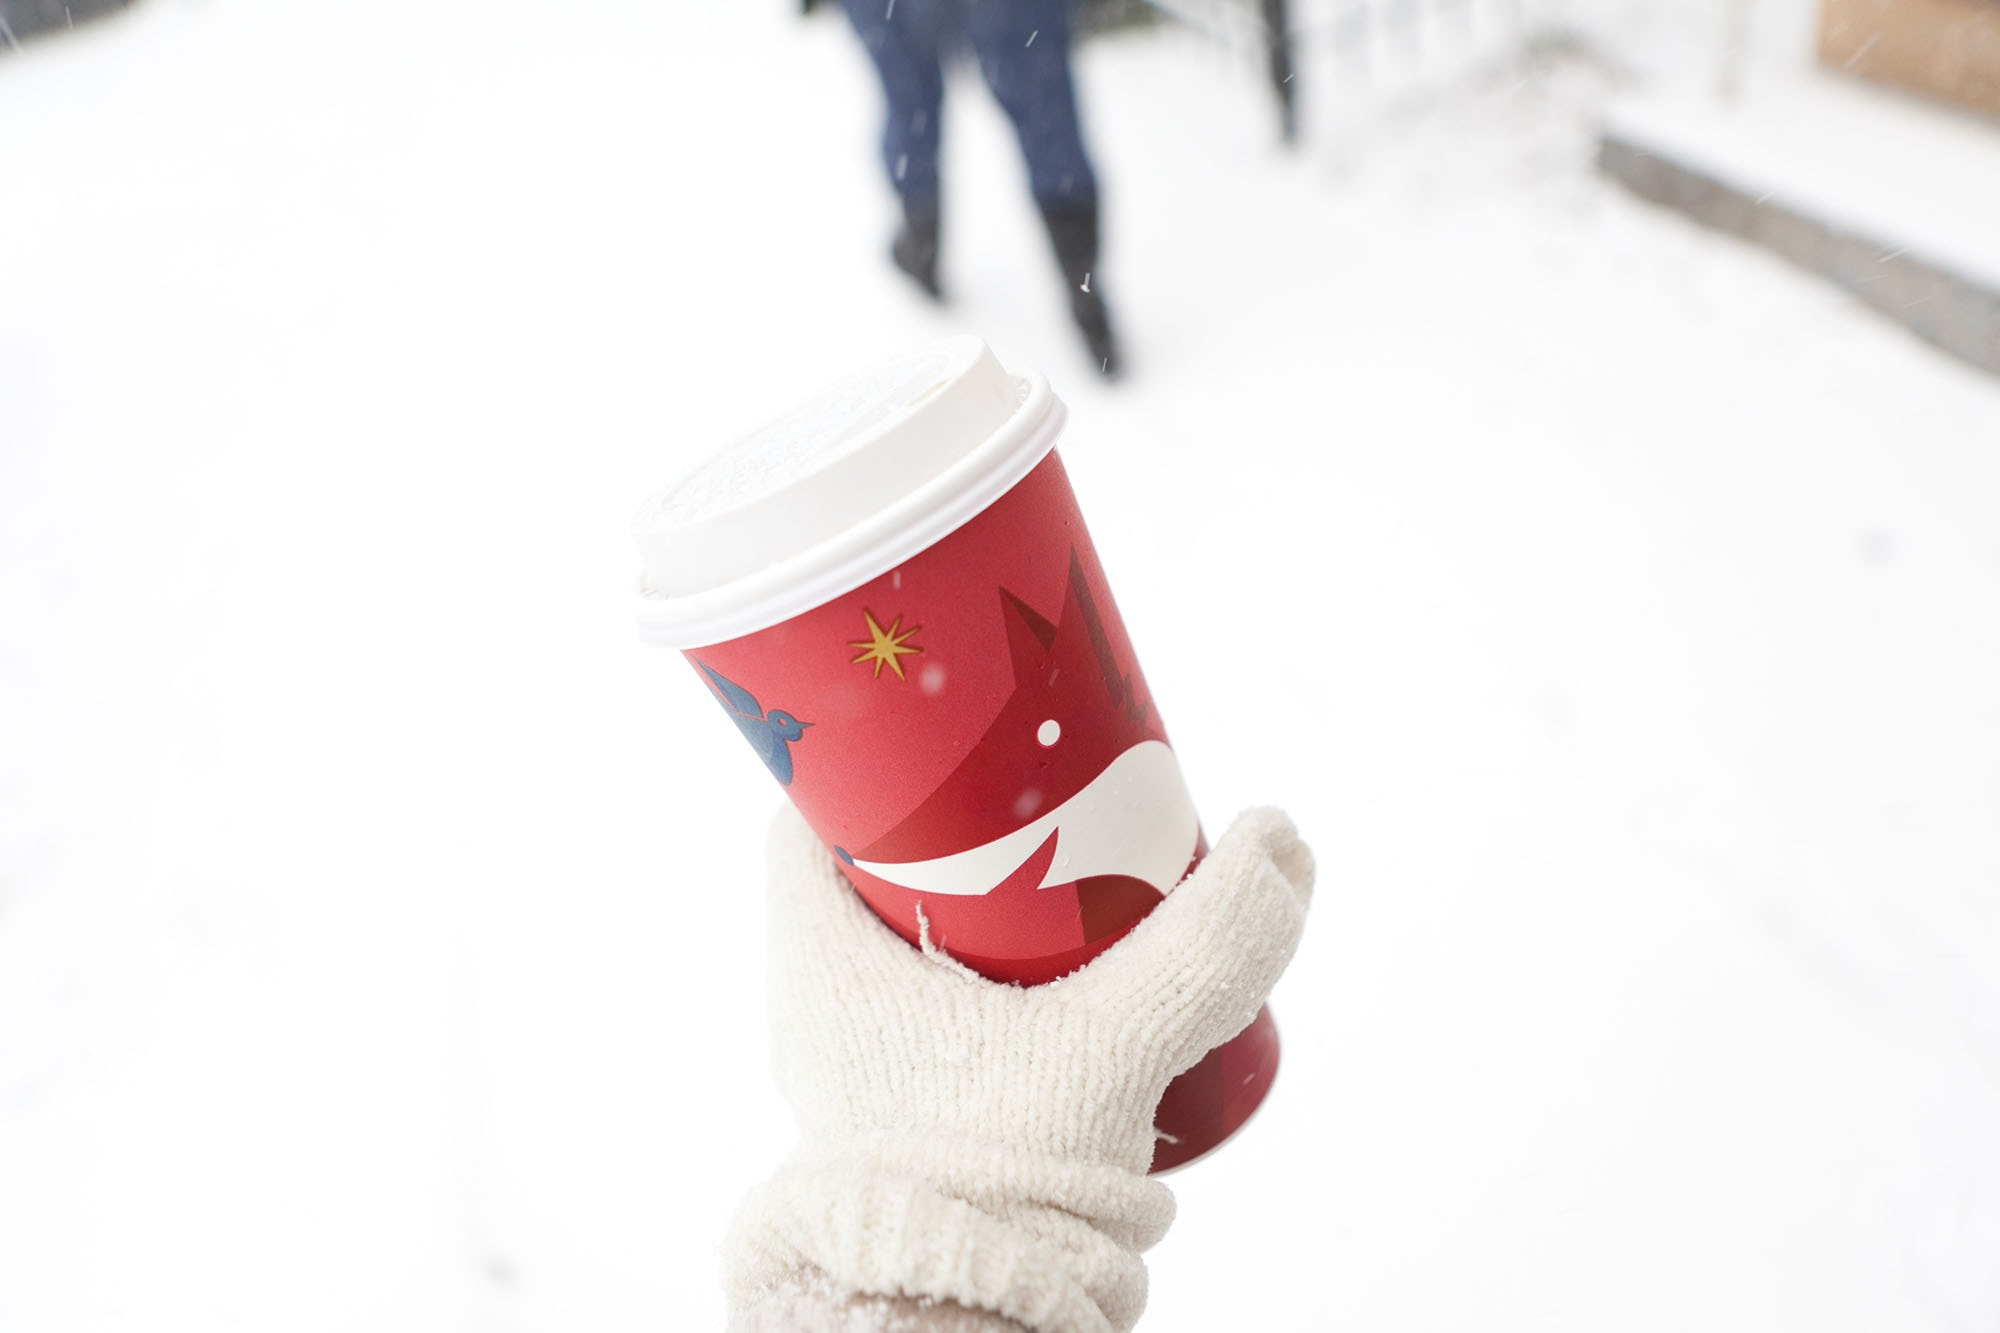 Starbucks open on Christmas - it's a holiday miracle!